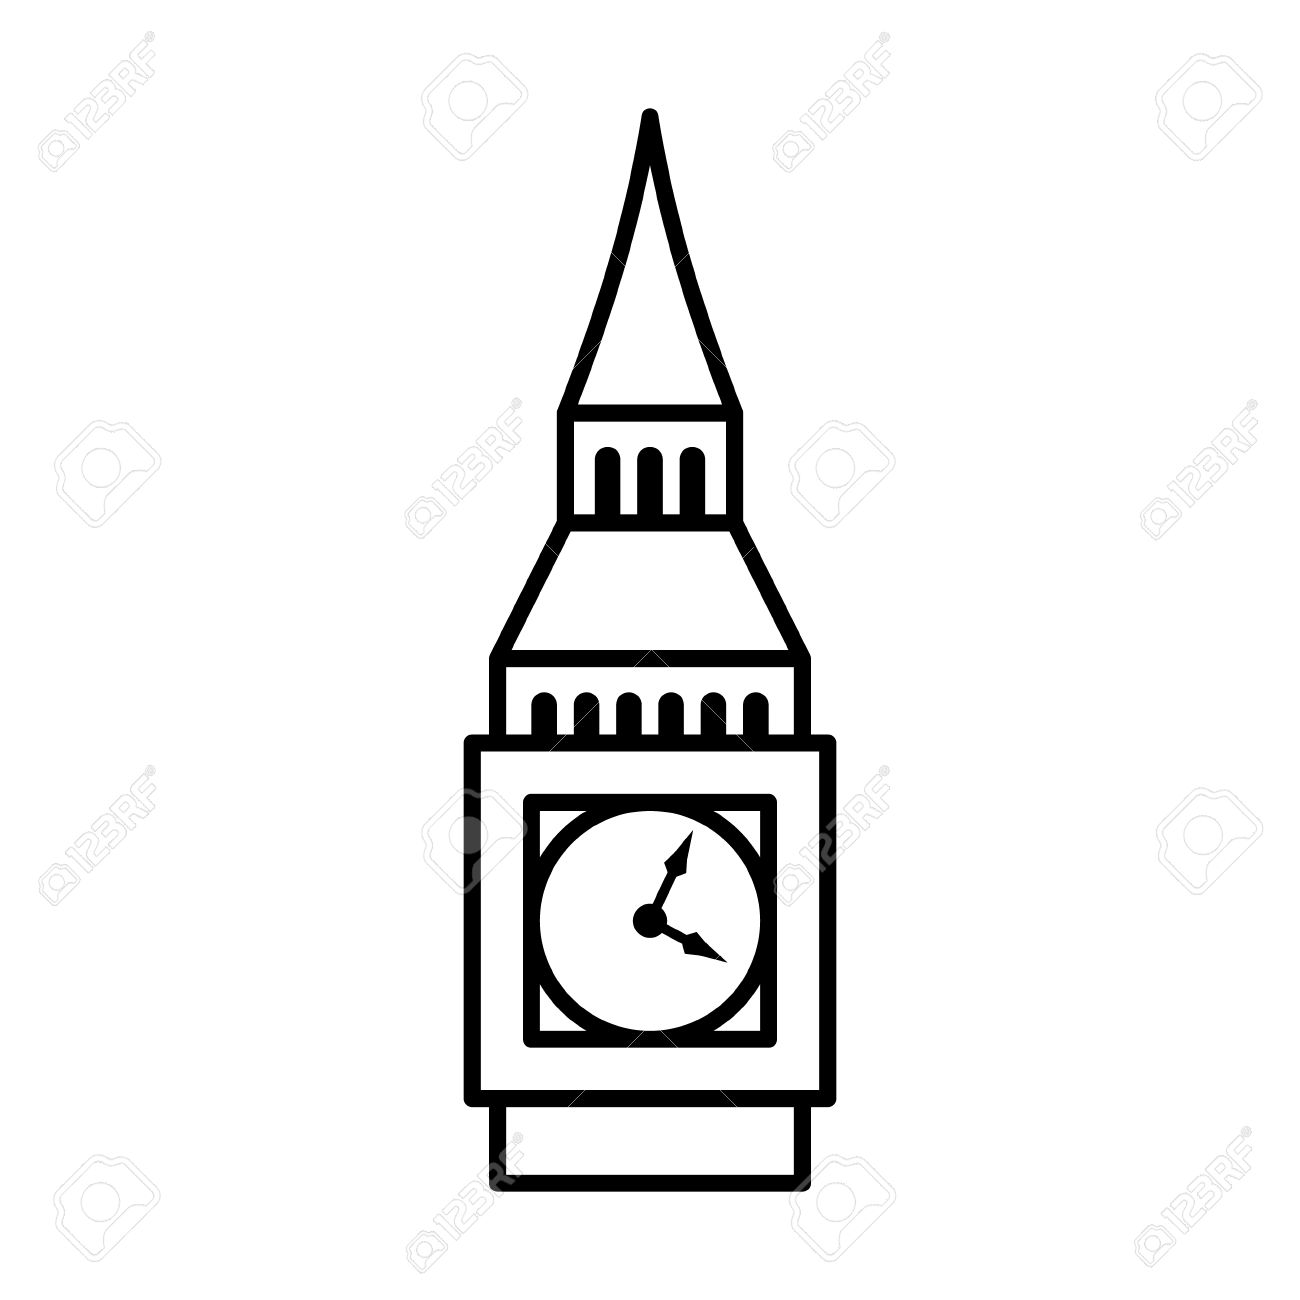 big ben clock tower elizabeth tower in london line art icon rh 123rf com big ben clipart black and white big ben london clipart free